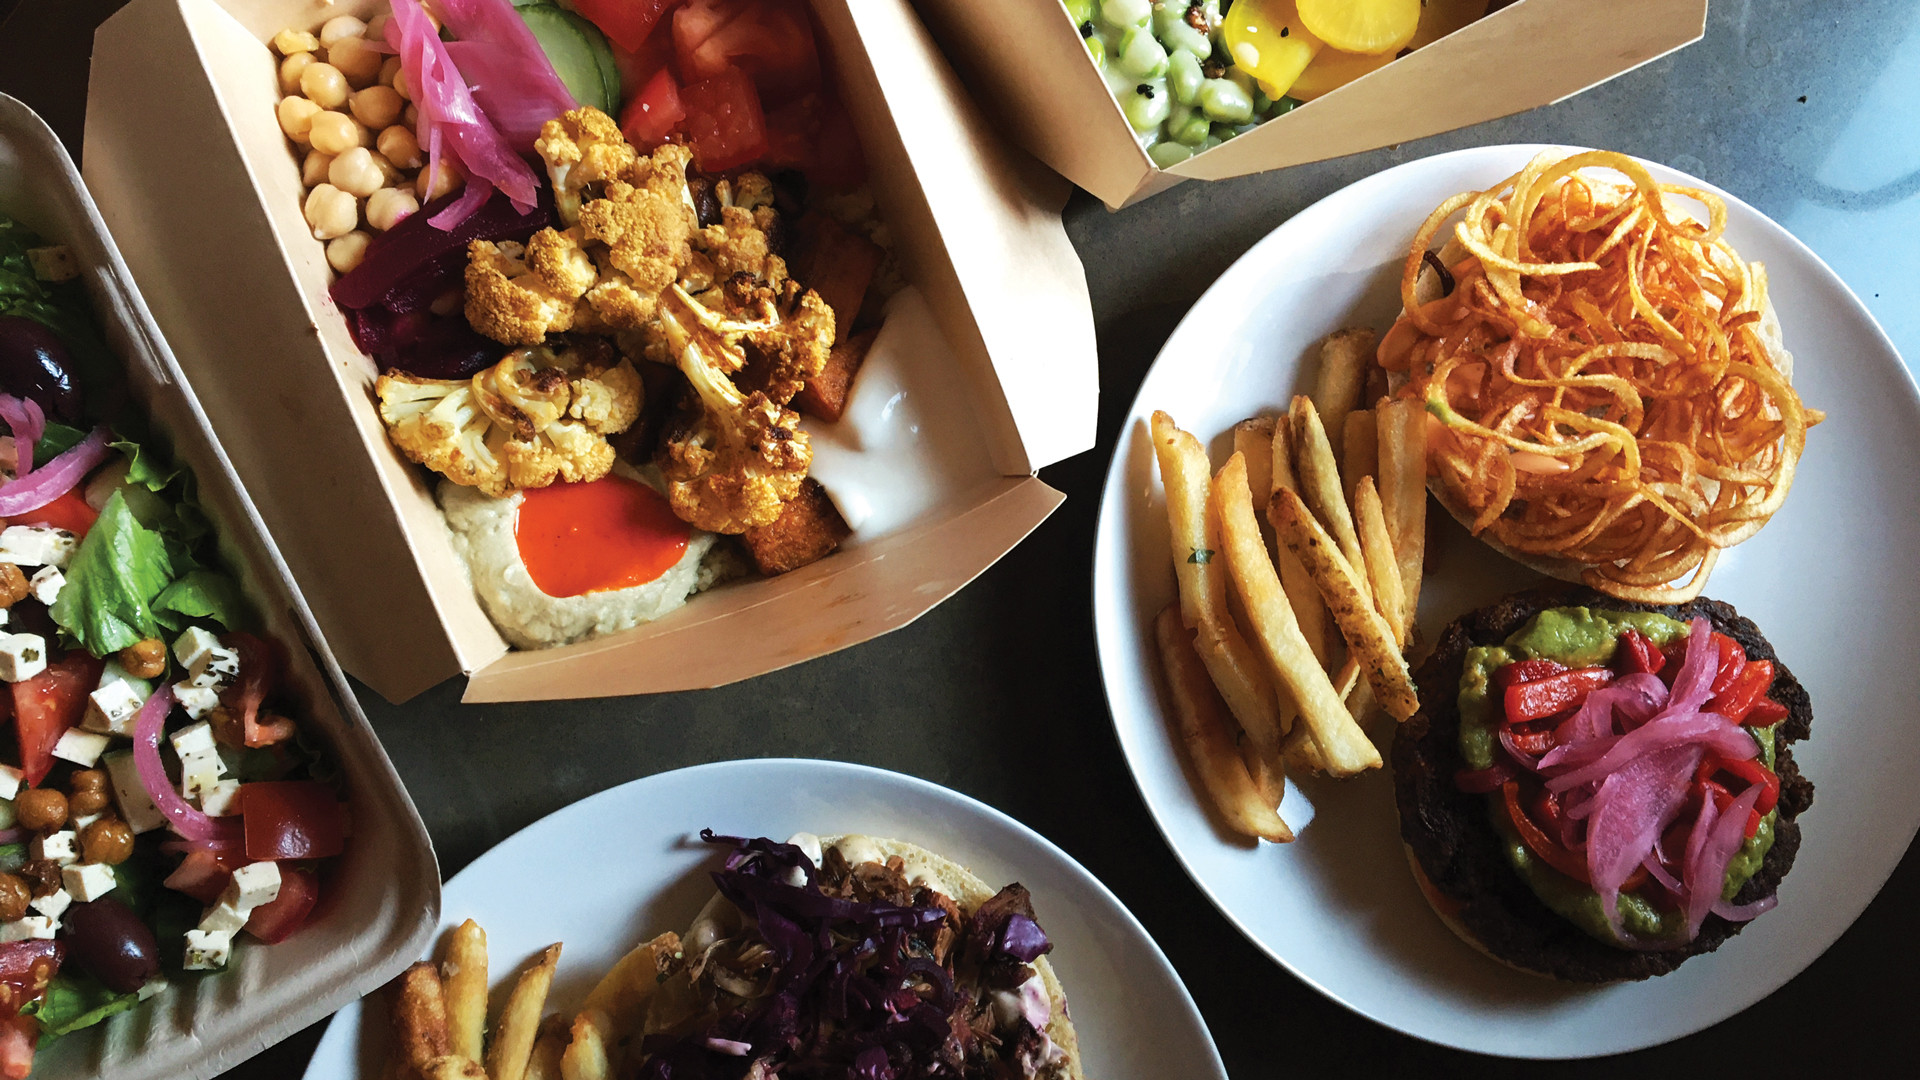 The best new restaurants in Toronto | takeout and delivery from SweetChops vegan restaurant